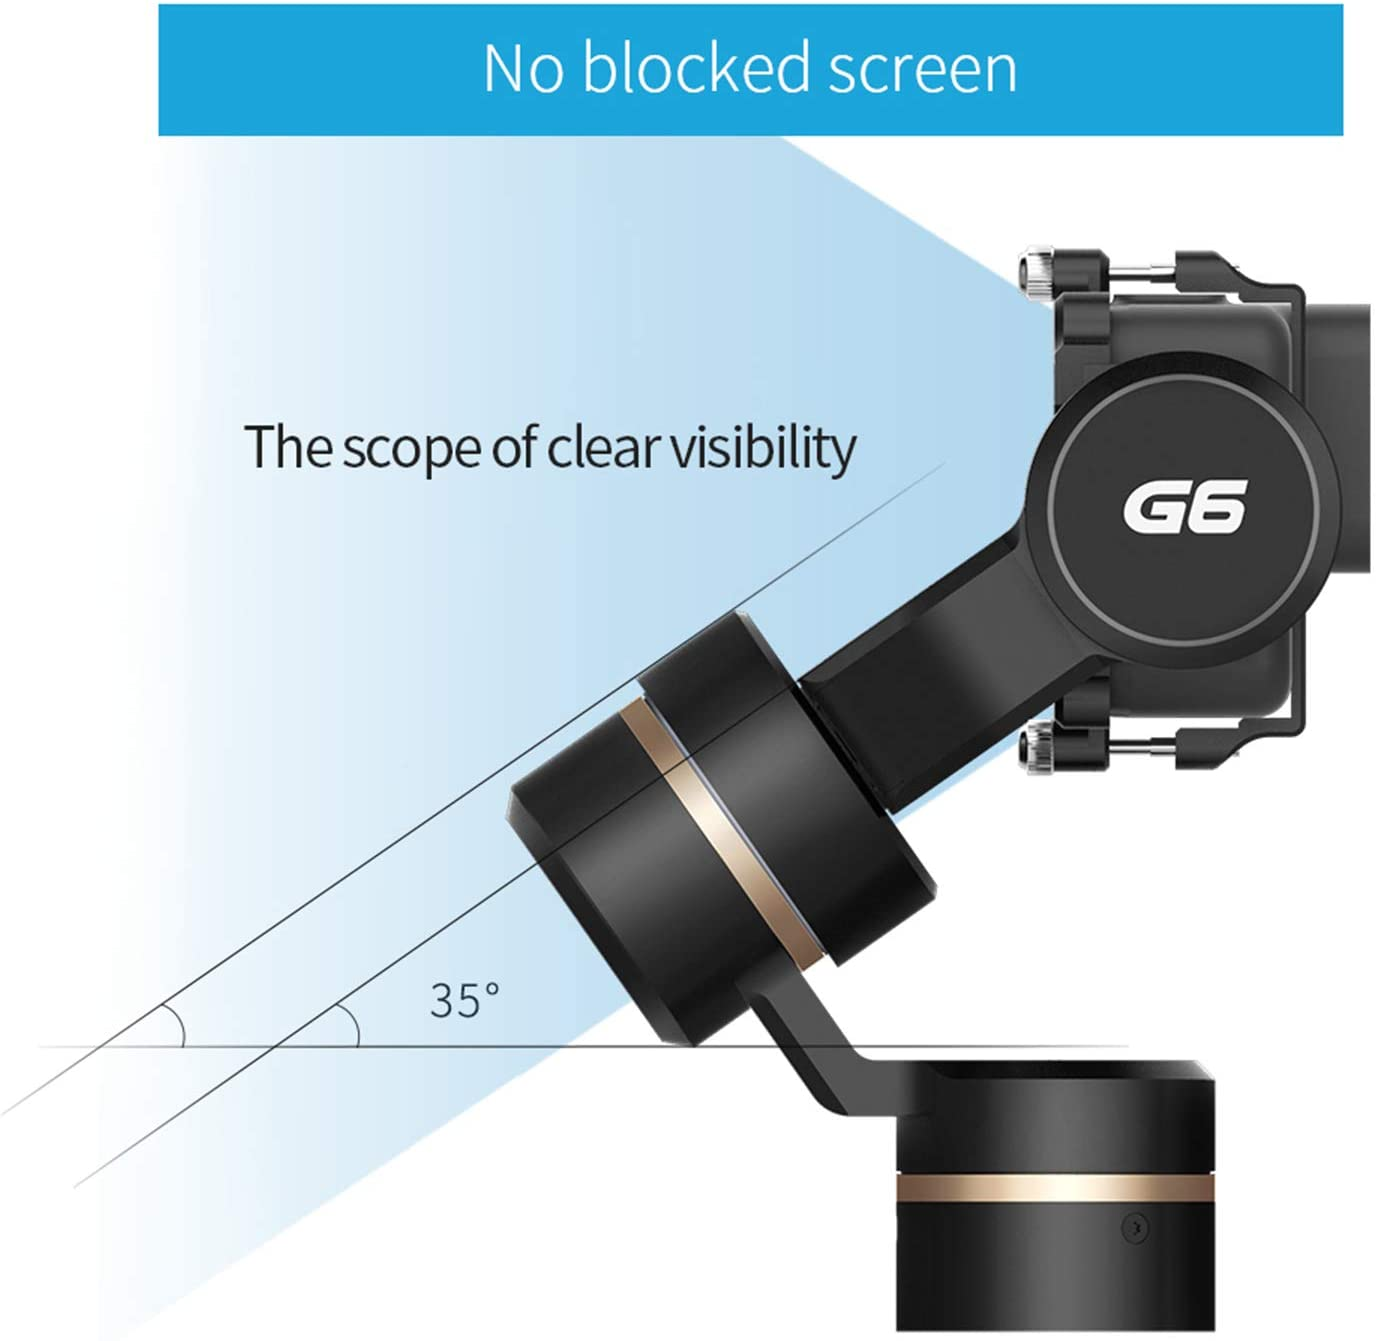 G6 3-Axis Handheld Camera Gimbal Stabilizer for GoPro Action Camera with WiFi Bluetooth OLED Screen for GoPro Hero 8 7 6 5 Sony RX0 Yi 4k DJI Osmo Action Camera Splash-Proof